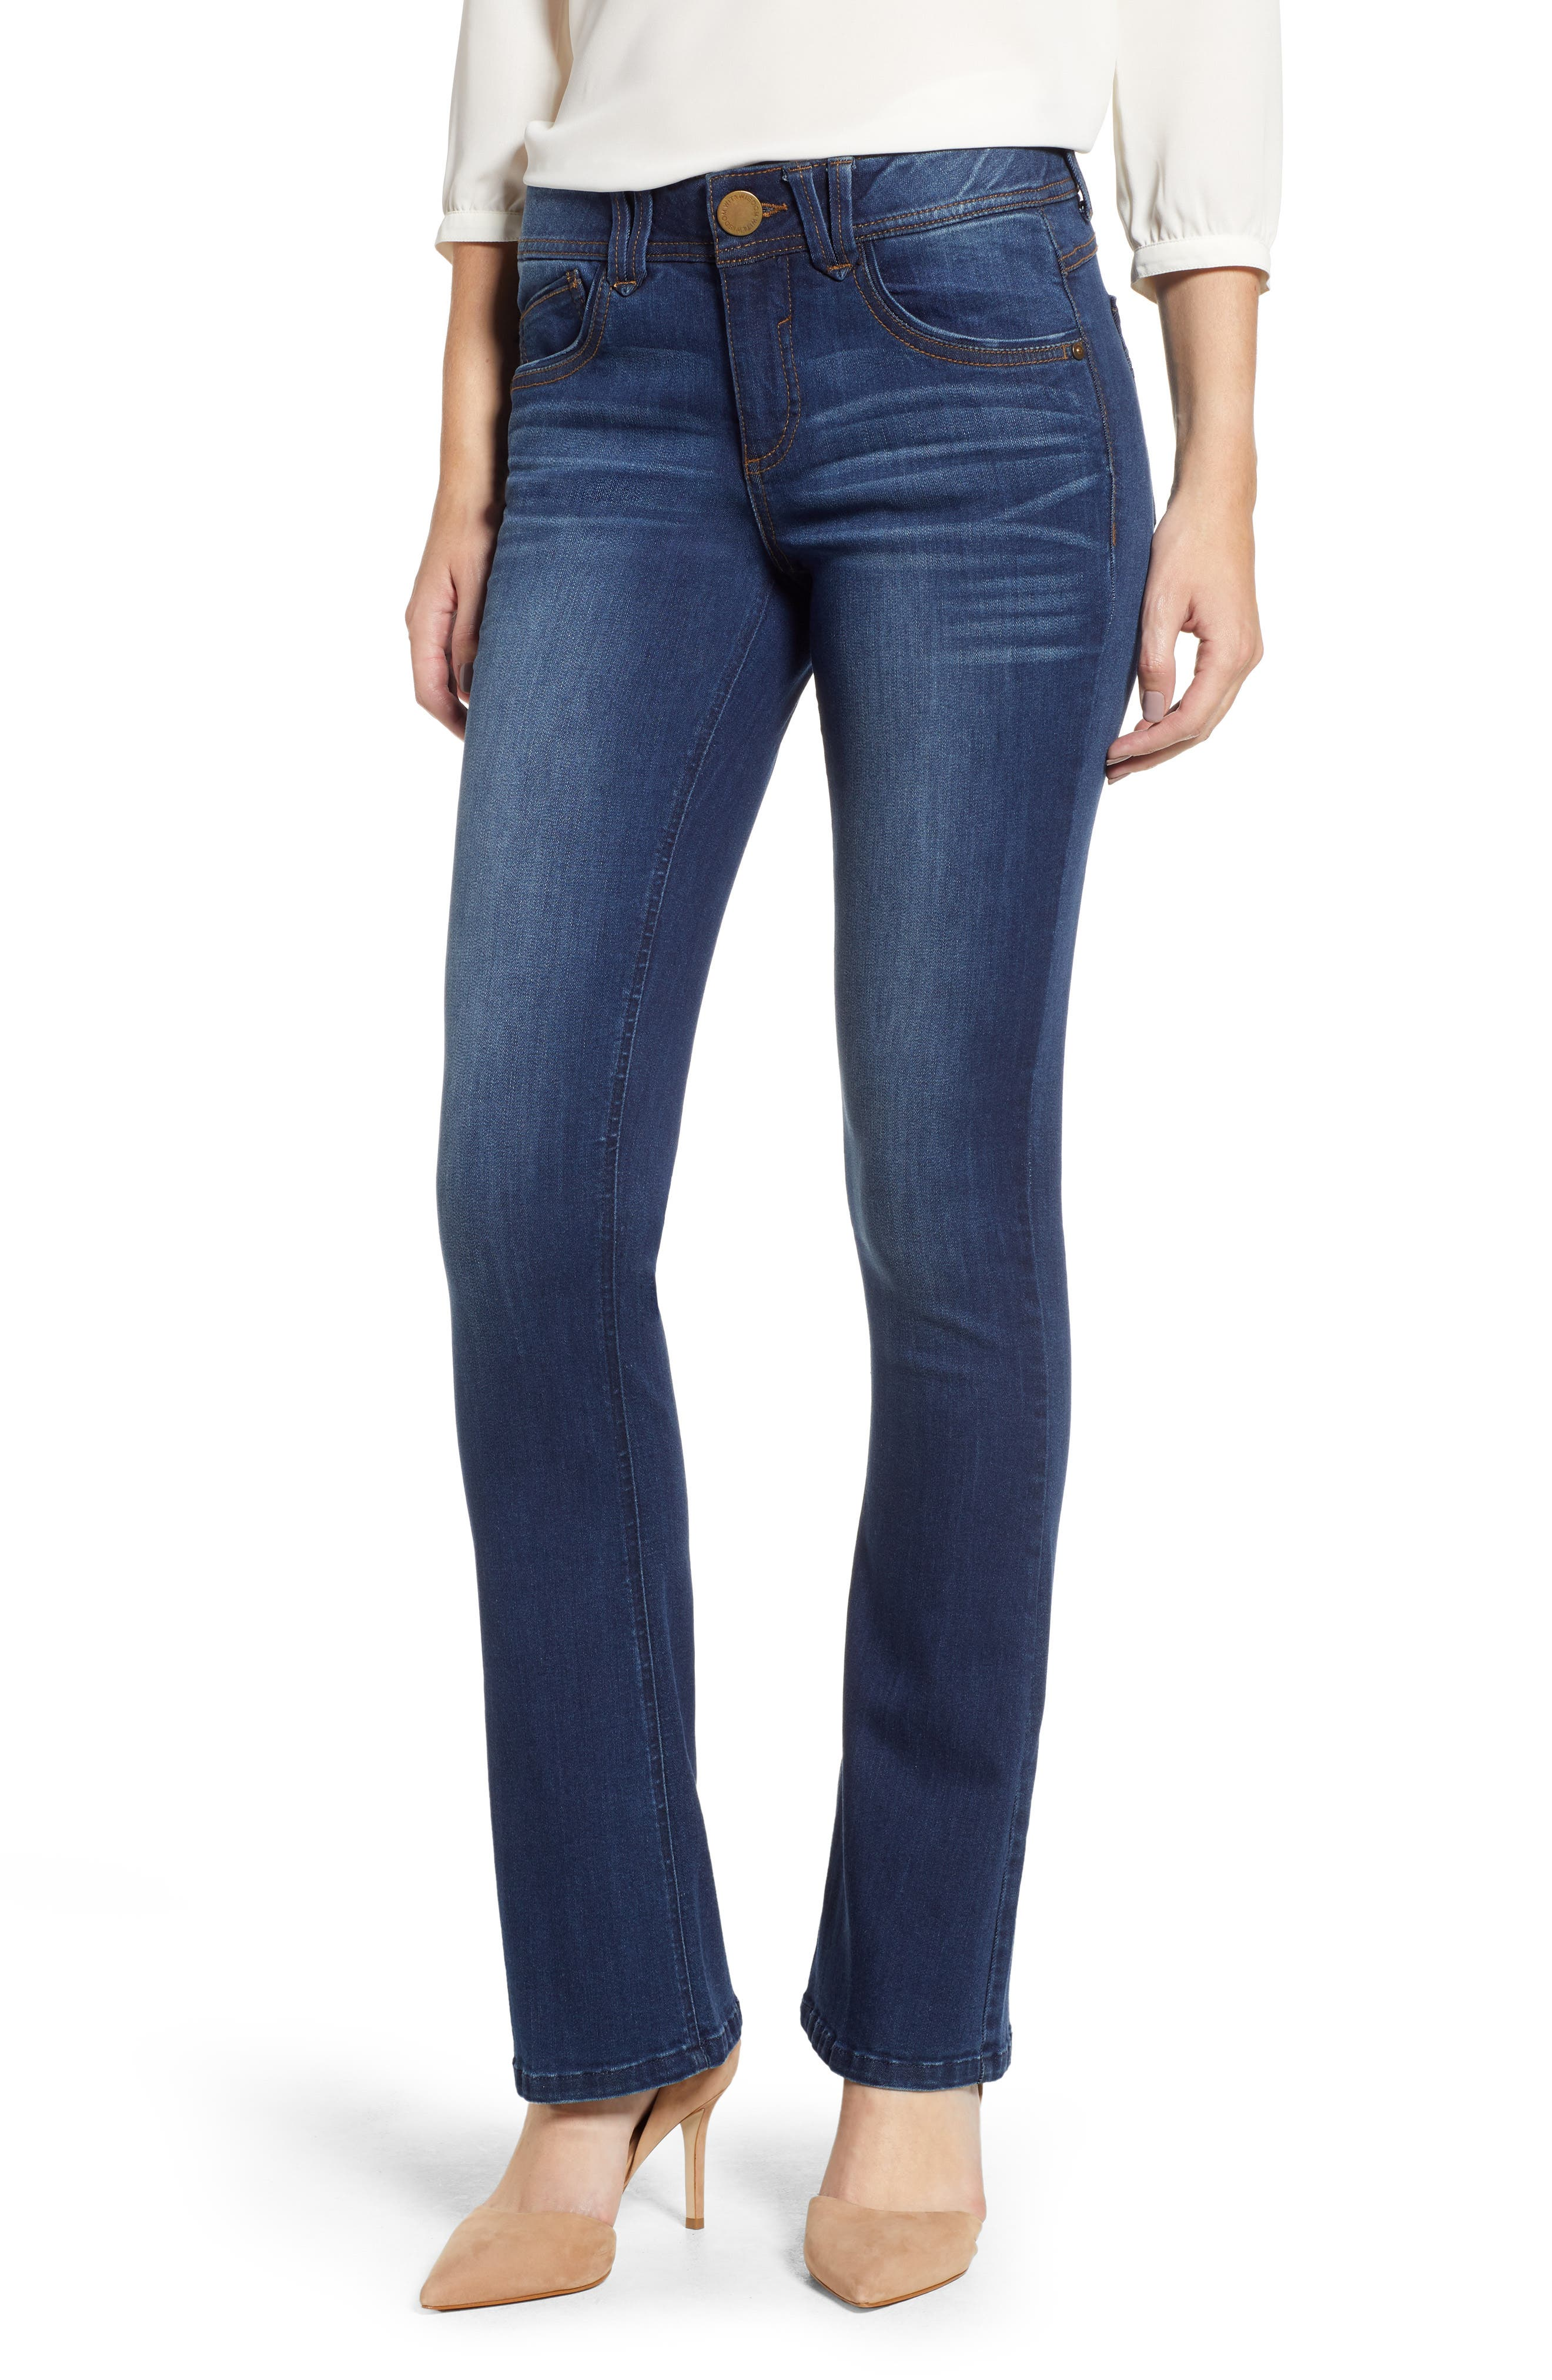 Ab-solution Luxe Touch Premium Jeans,                         Main,                         color, 420